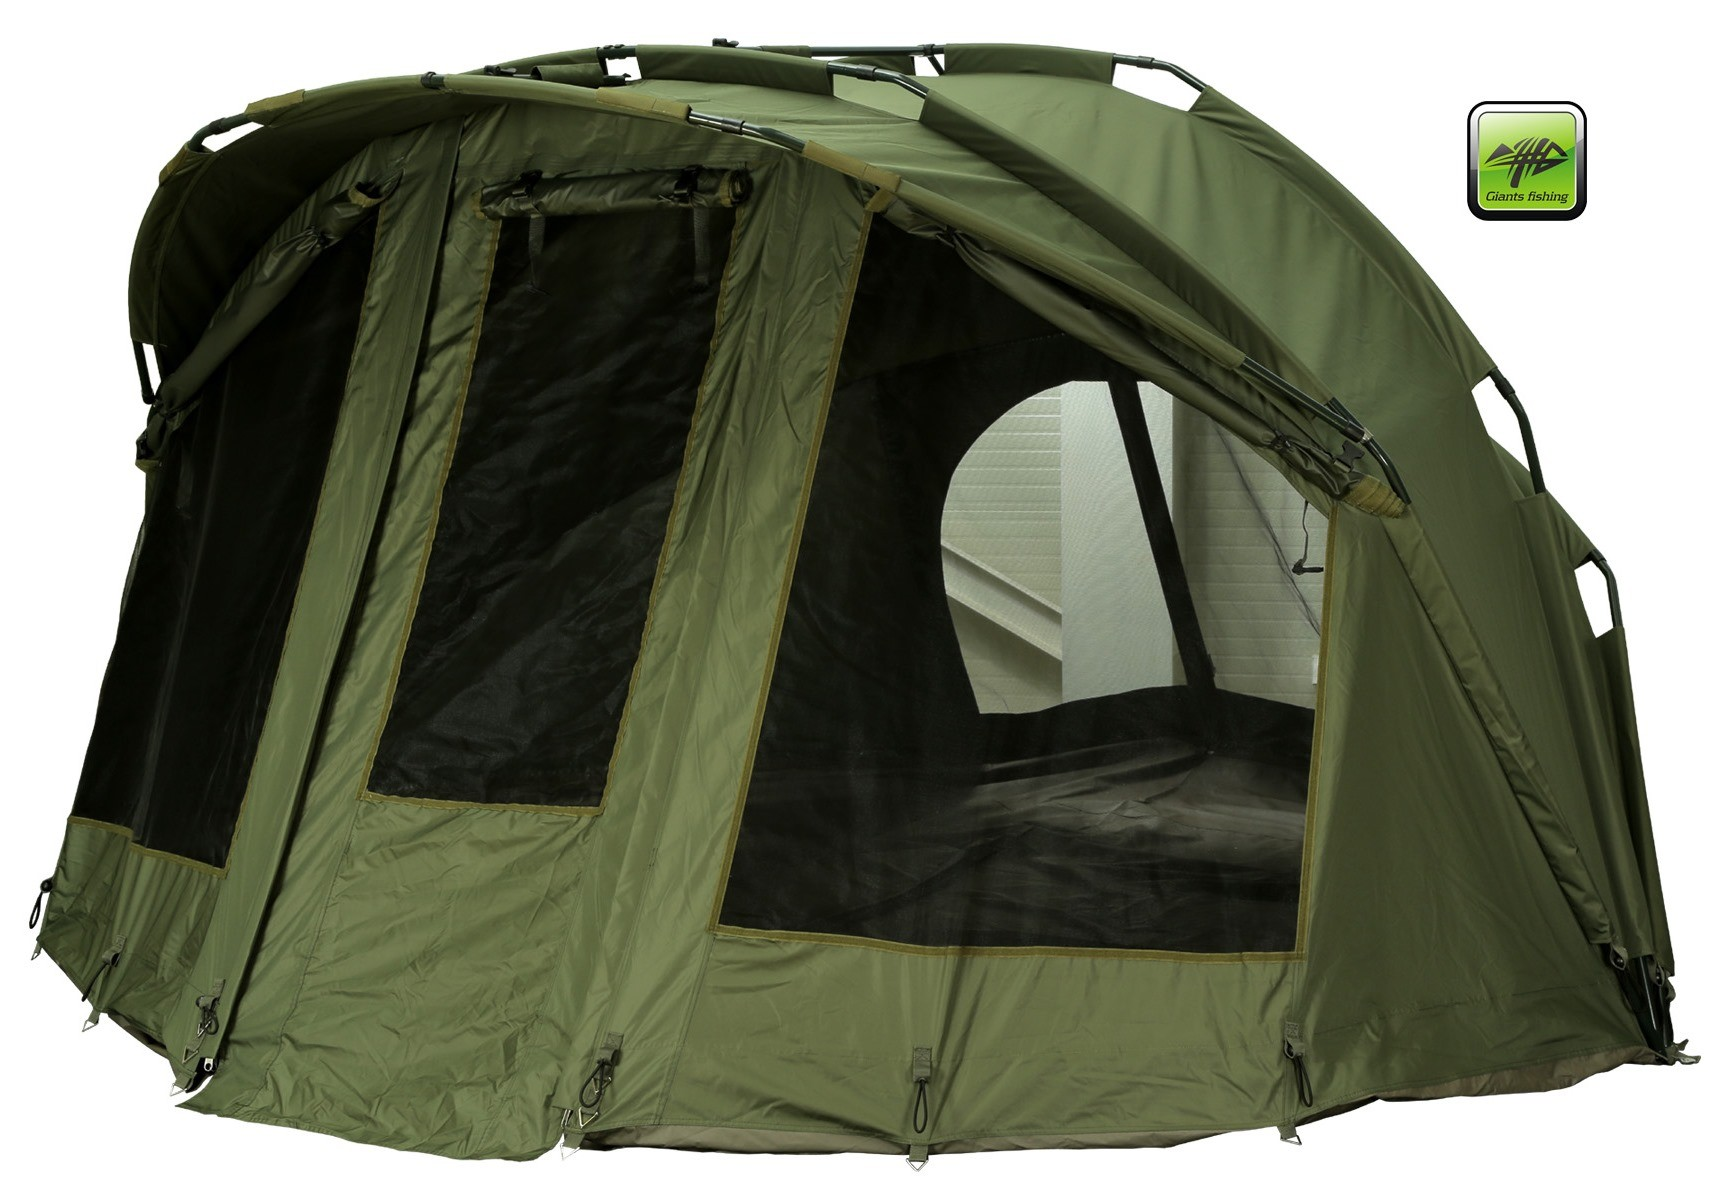 GIANTS FISHING Bivak - Luxury Bivvy 2-3 Man